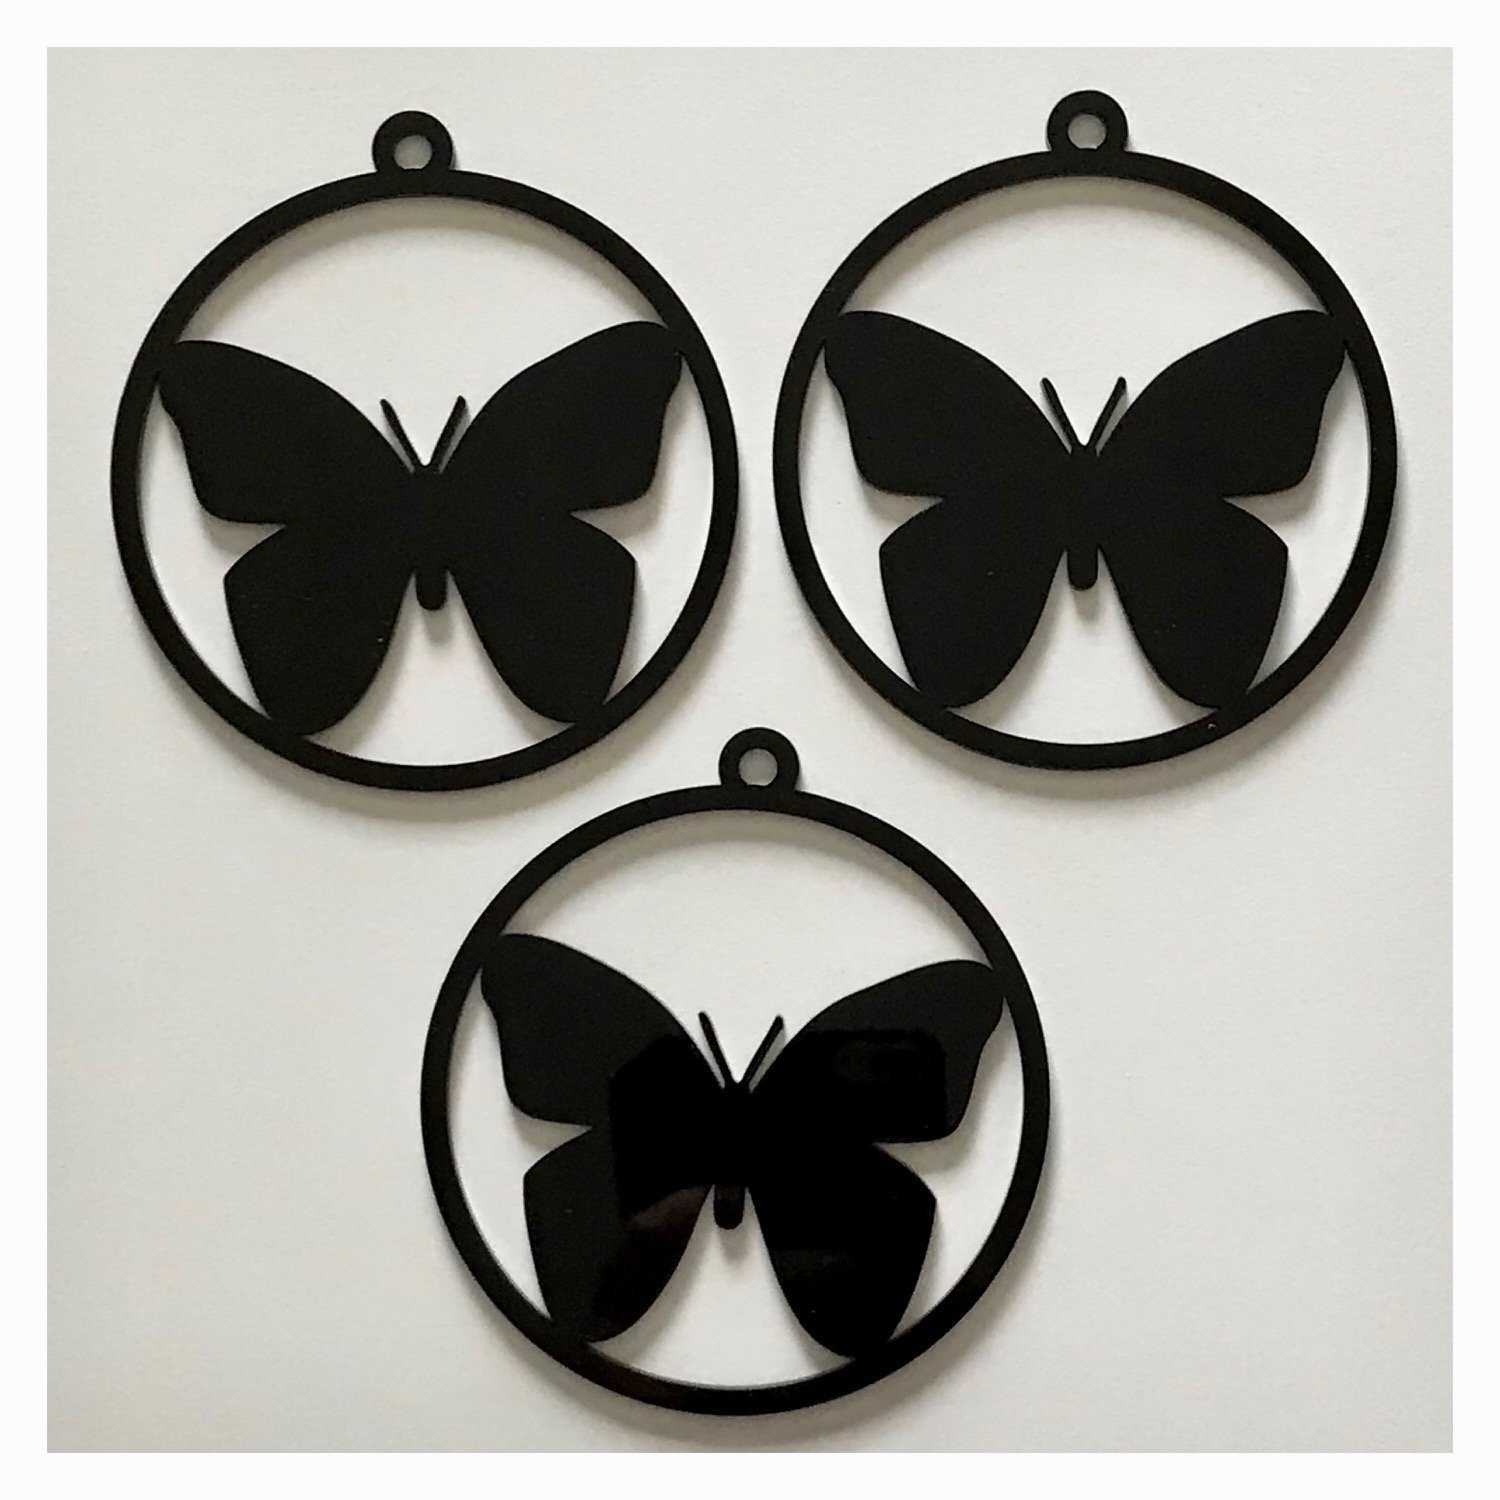 Butterfly Decoration Hanging Set Of 3 Black Plastic Acrylic Country Decor Garden - The Renmy Store